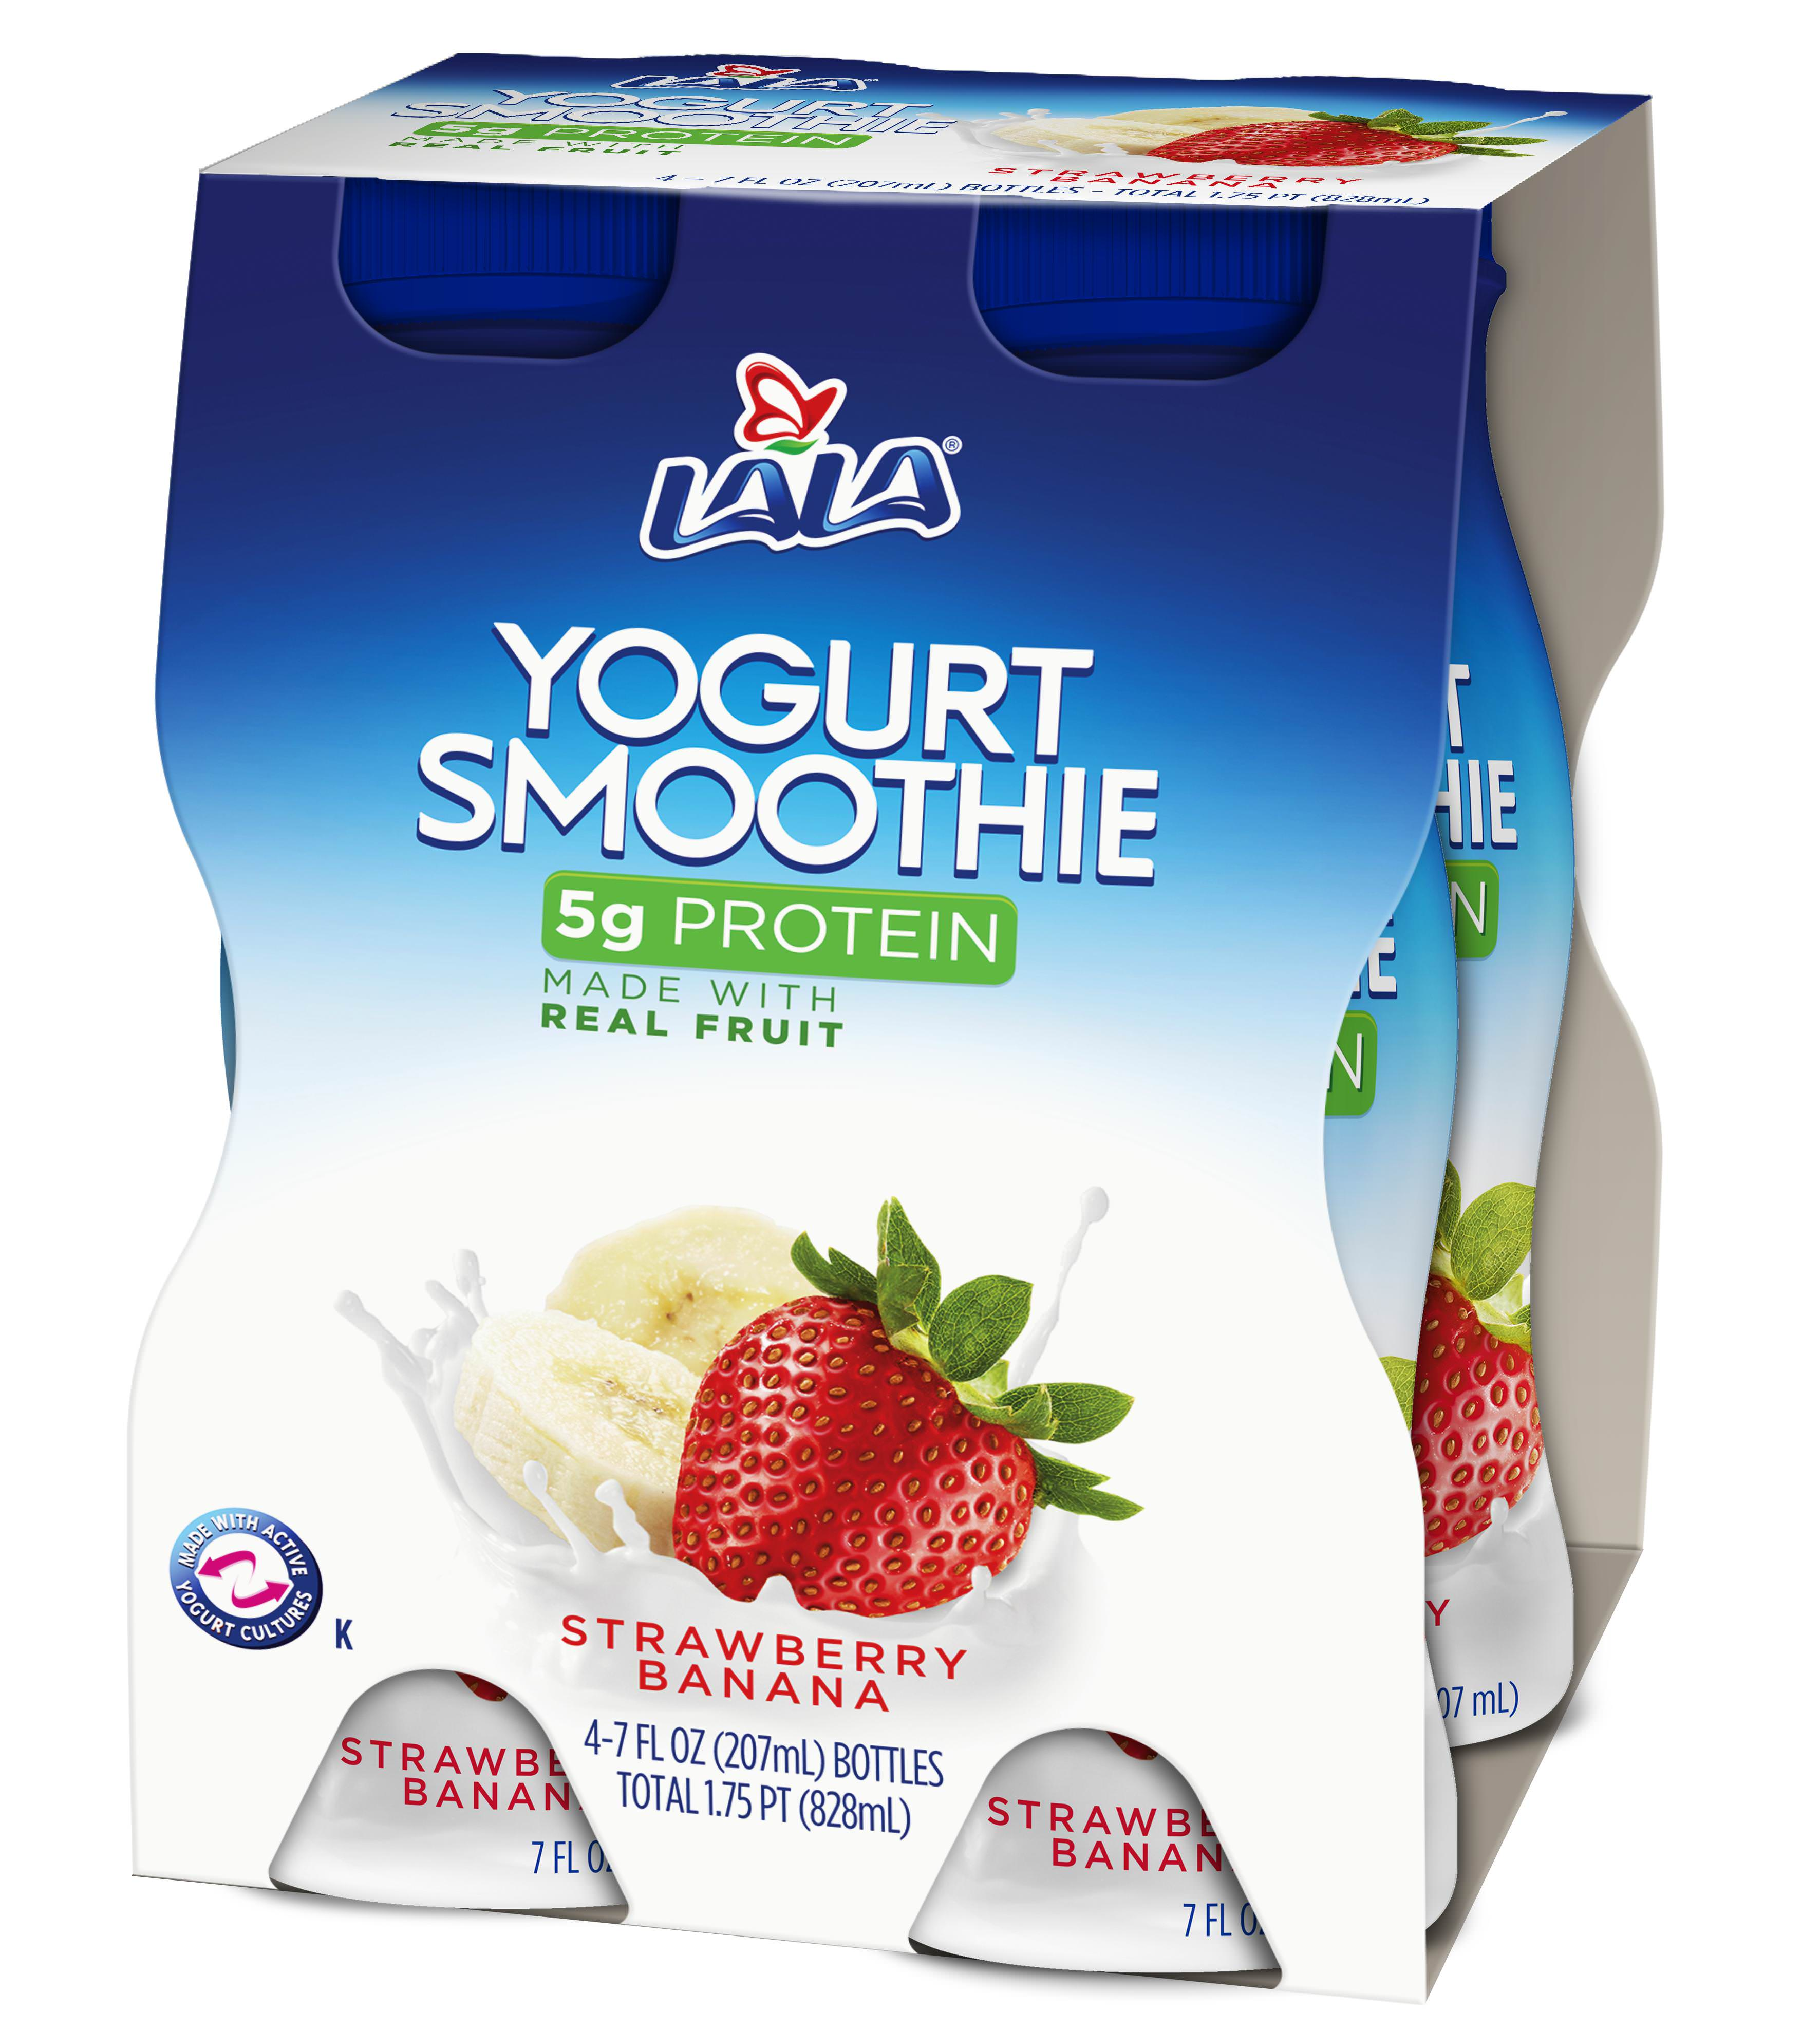 LALA Drinkable Yogurt, Strawberry Banana, 7 Oz., 4 Count